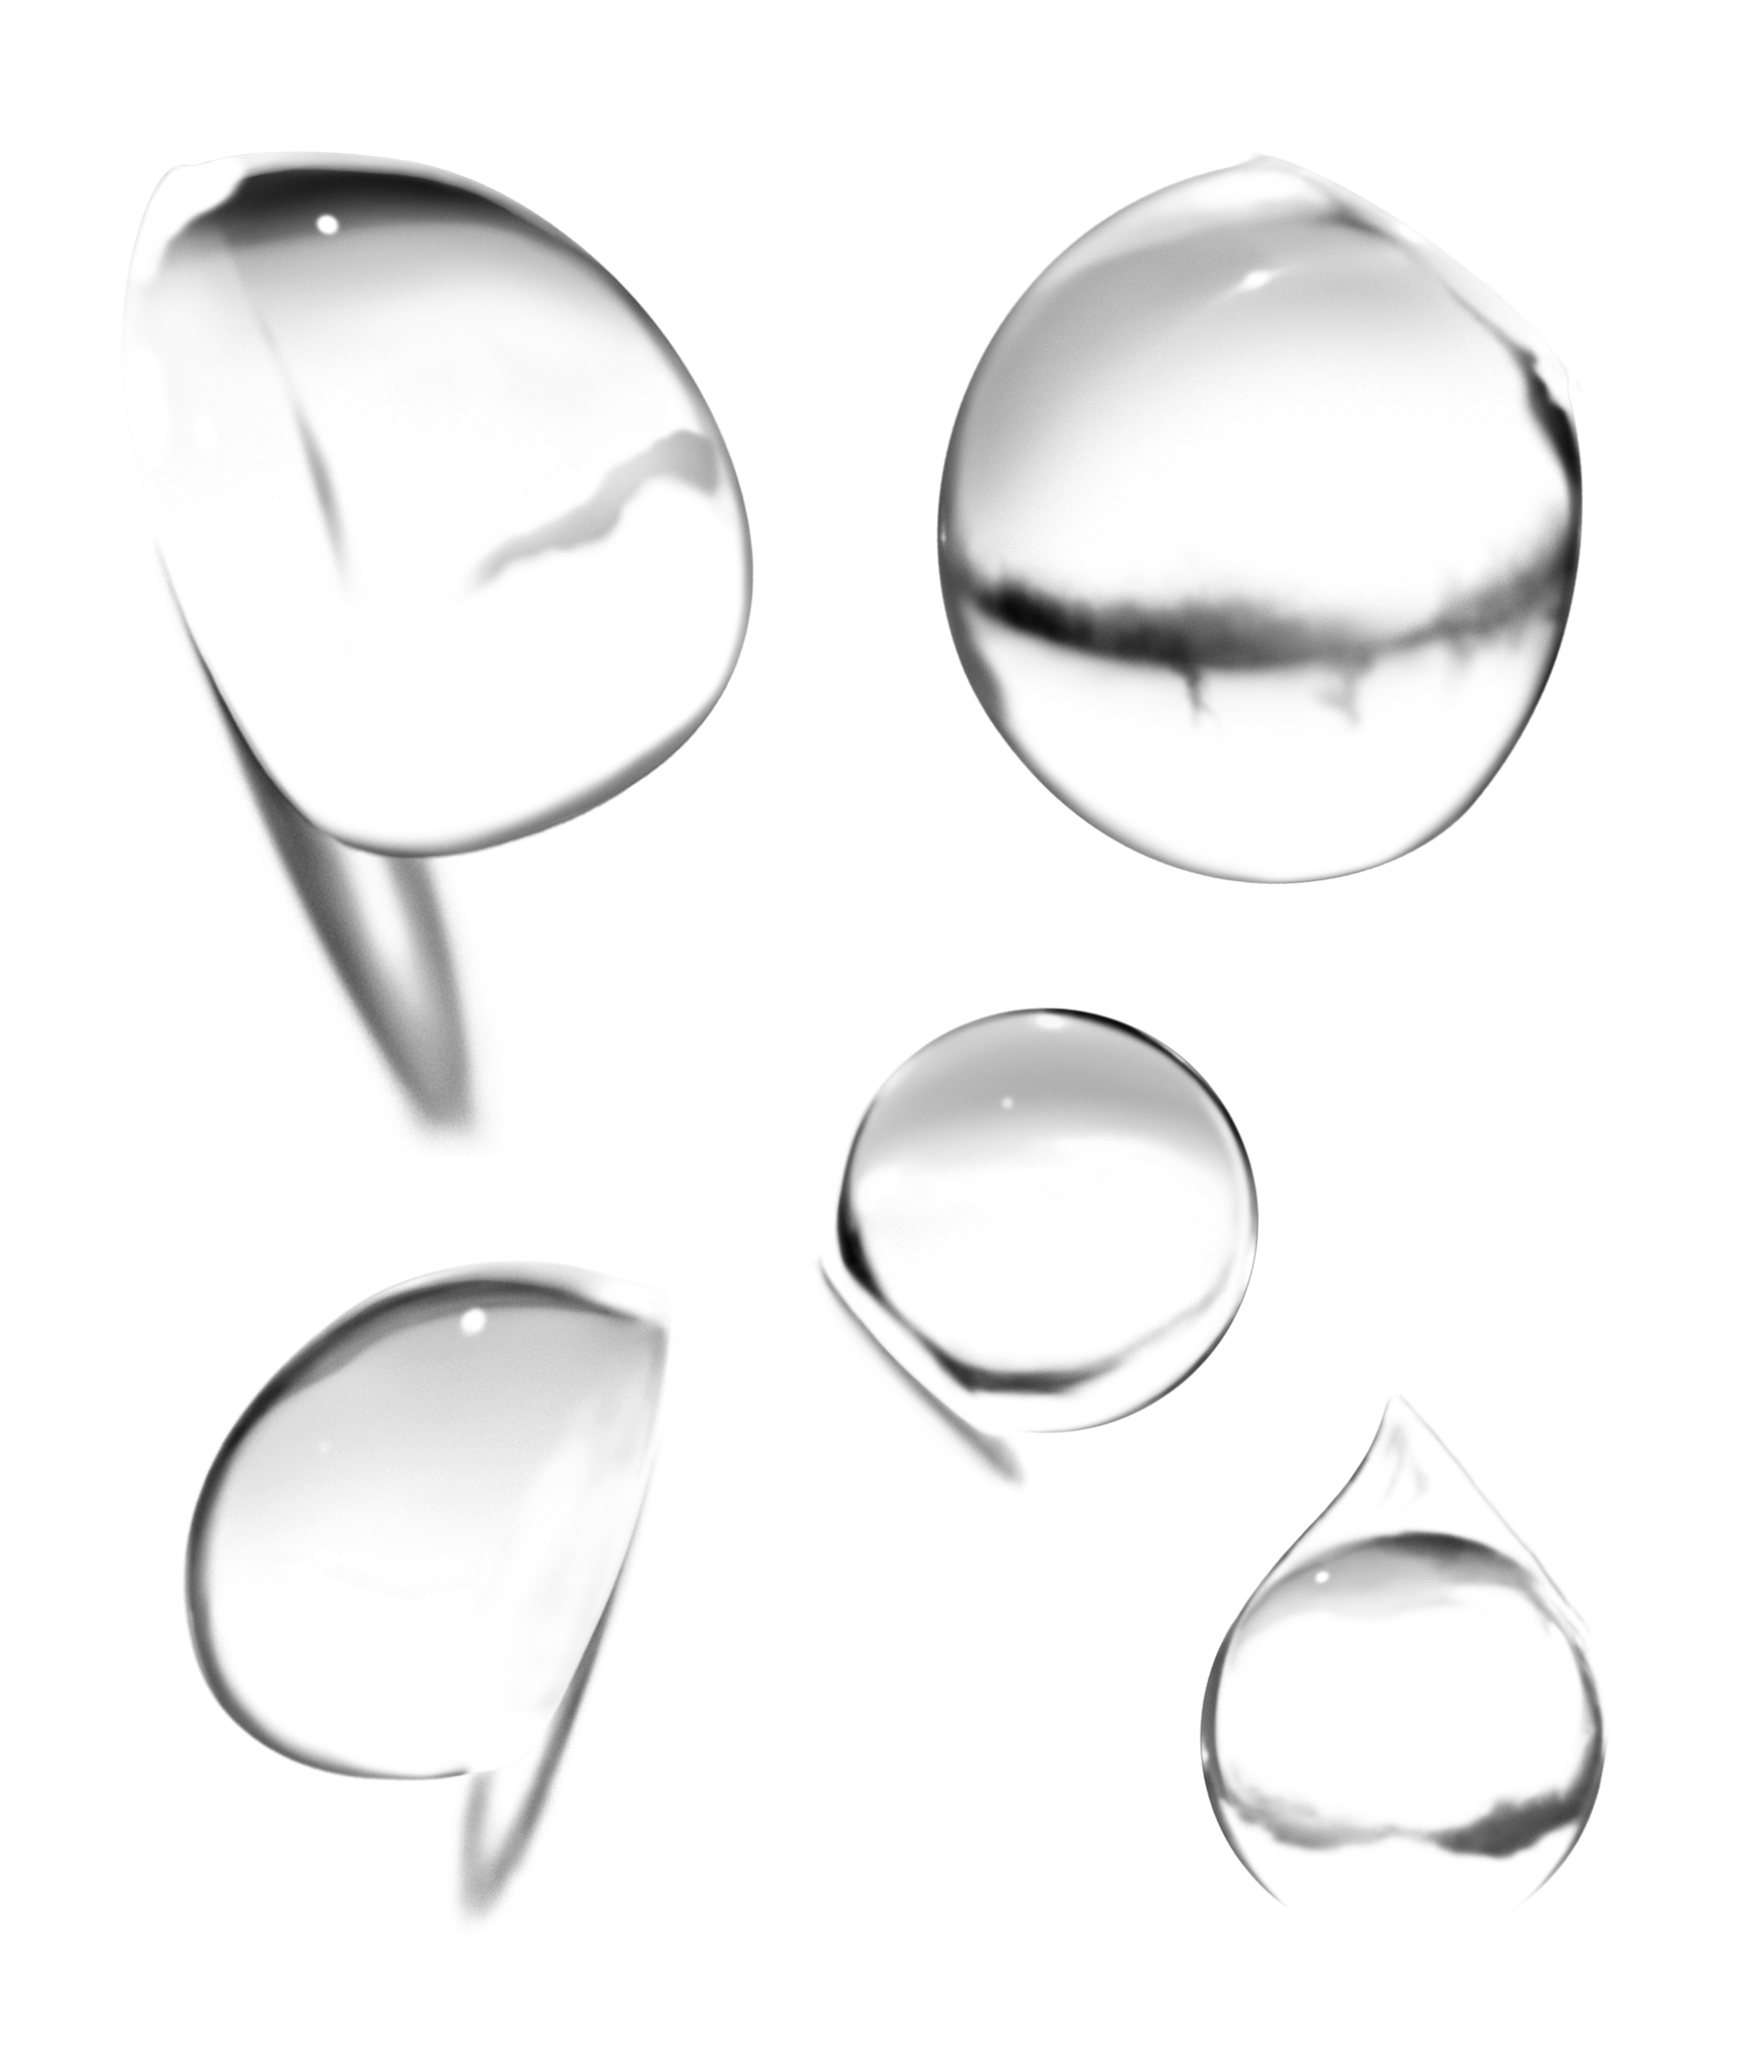 Water Drop PNG Image